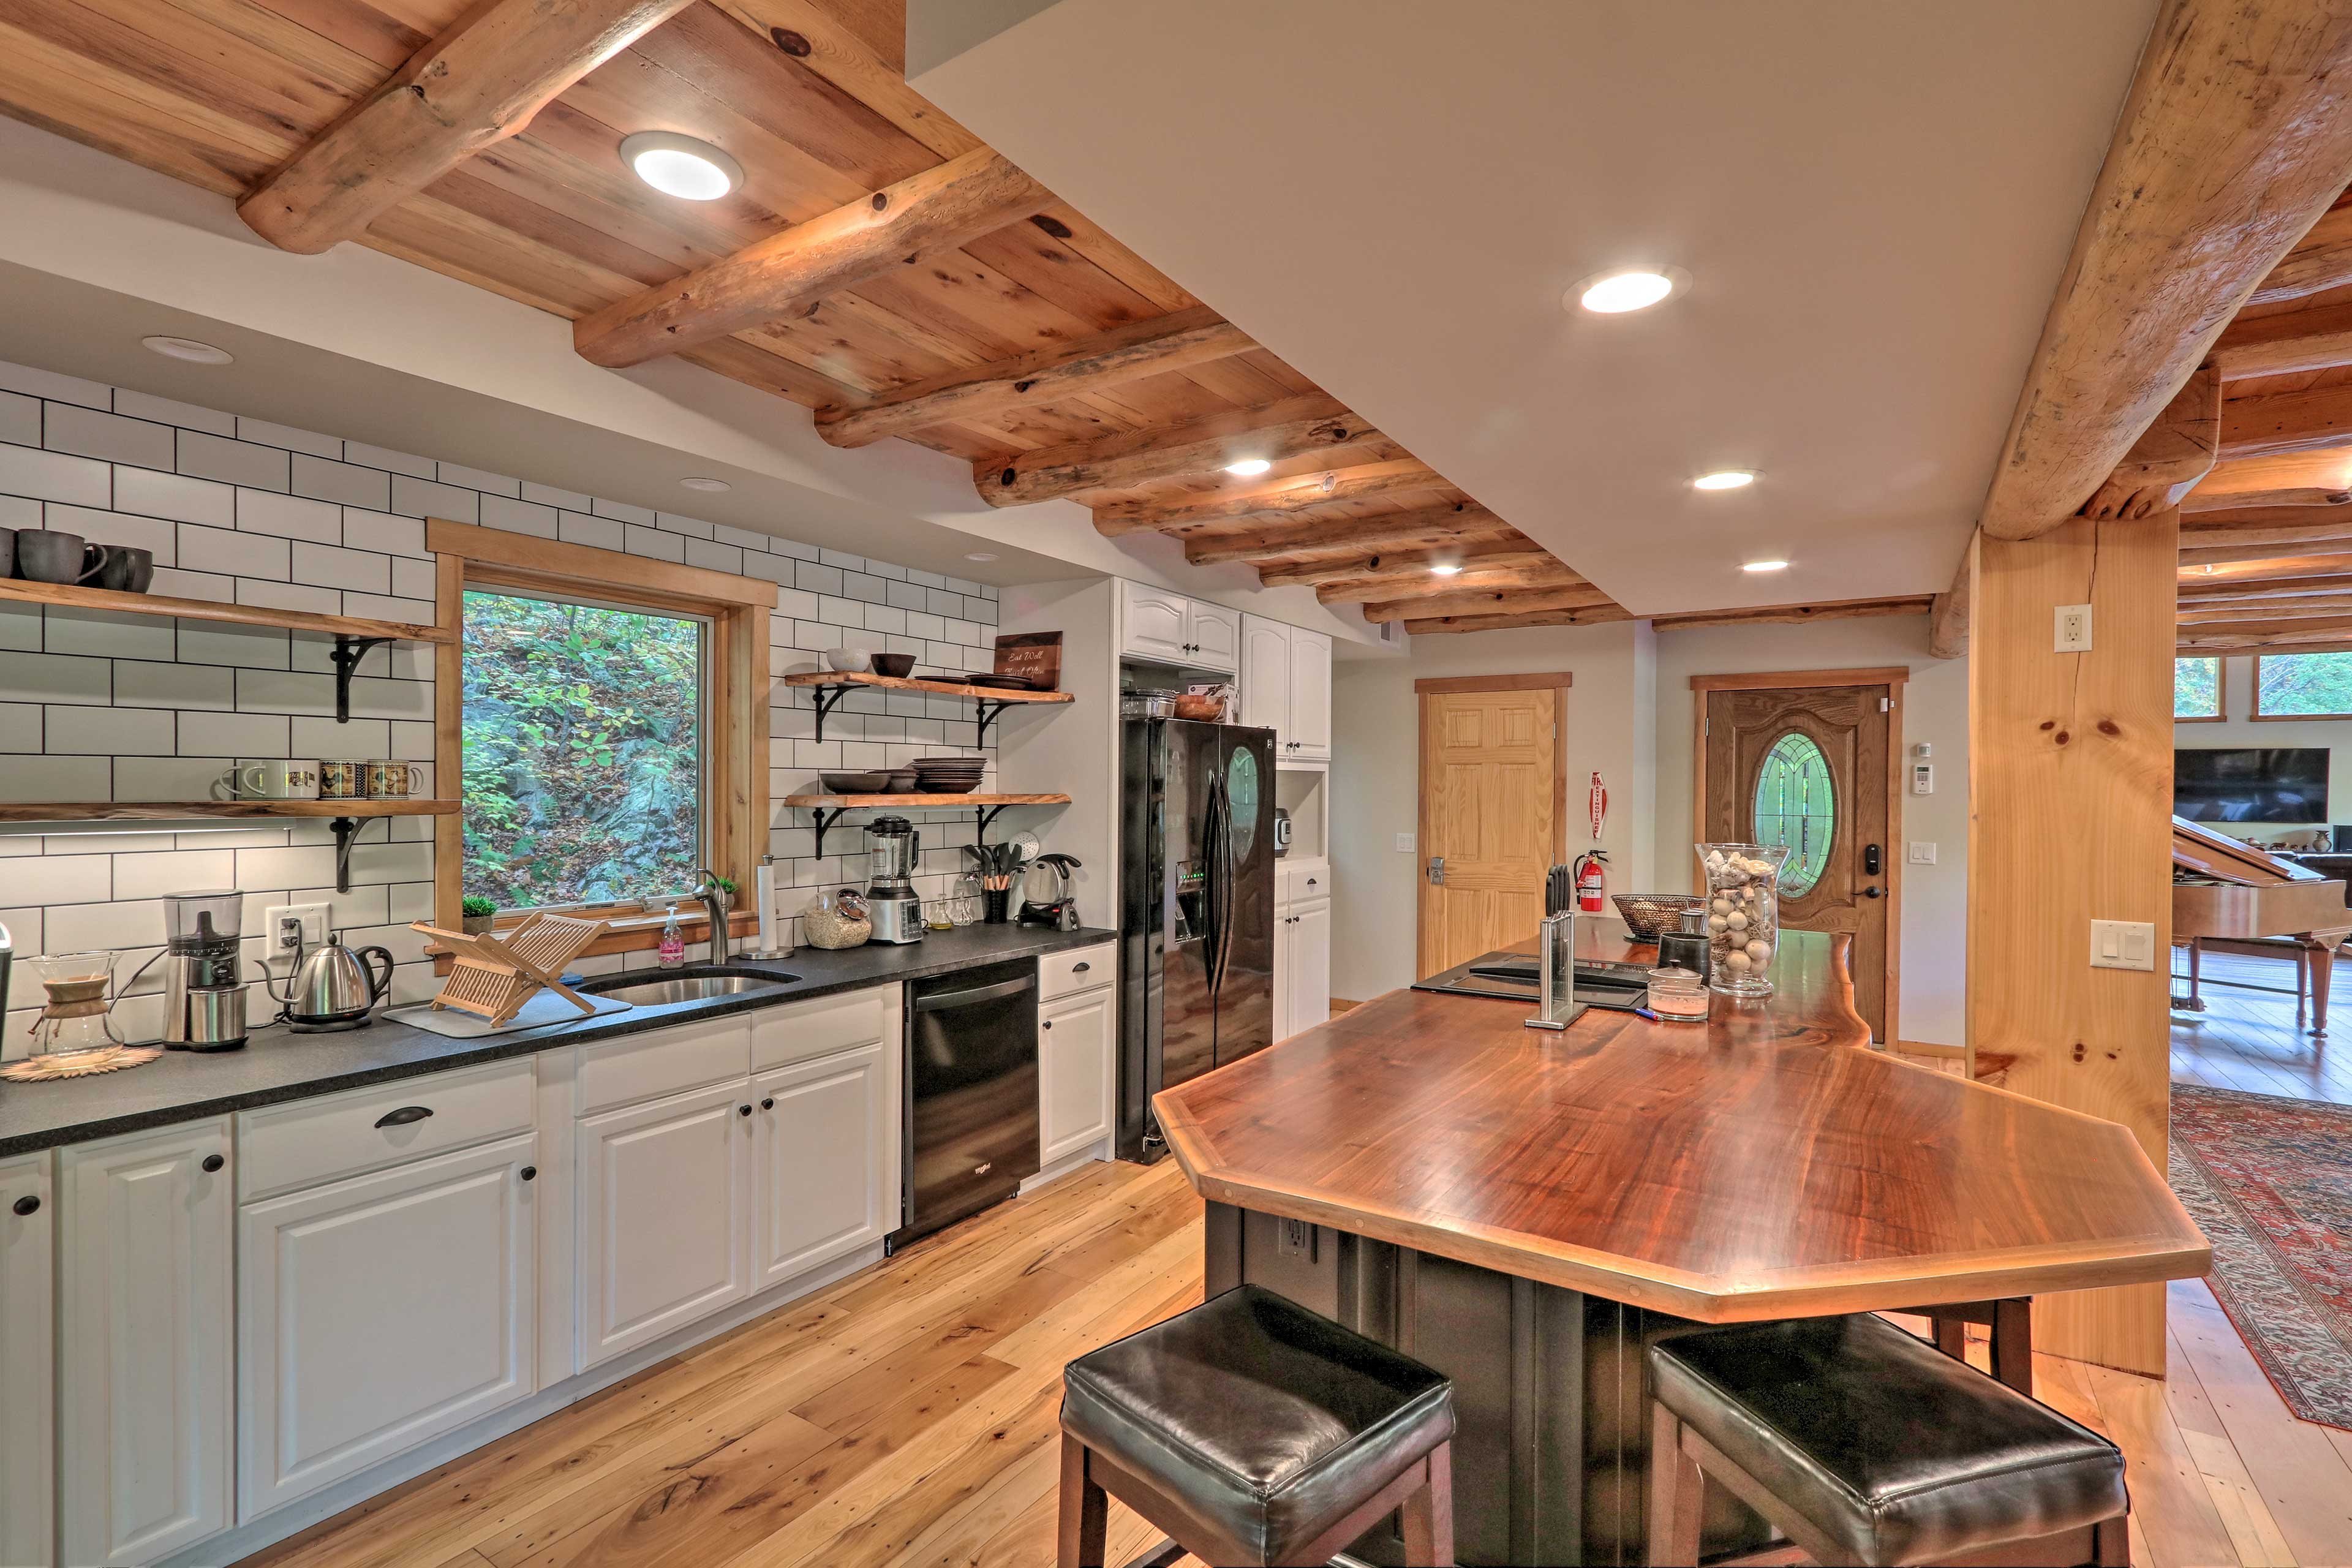 This kitchen comes with everything you could possibly need!